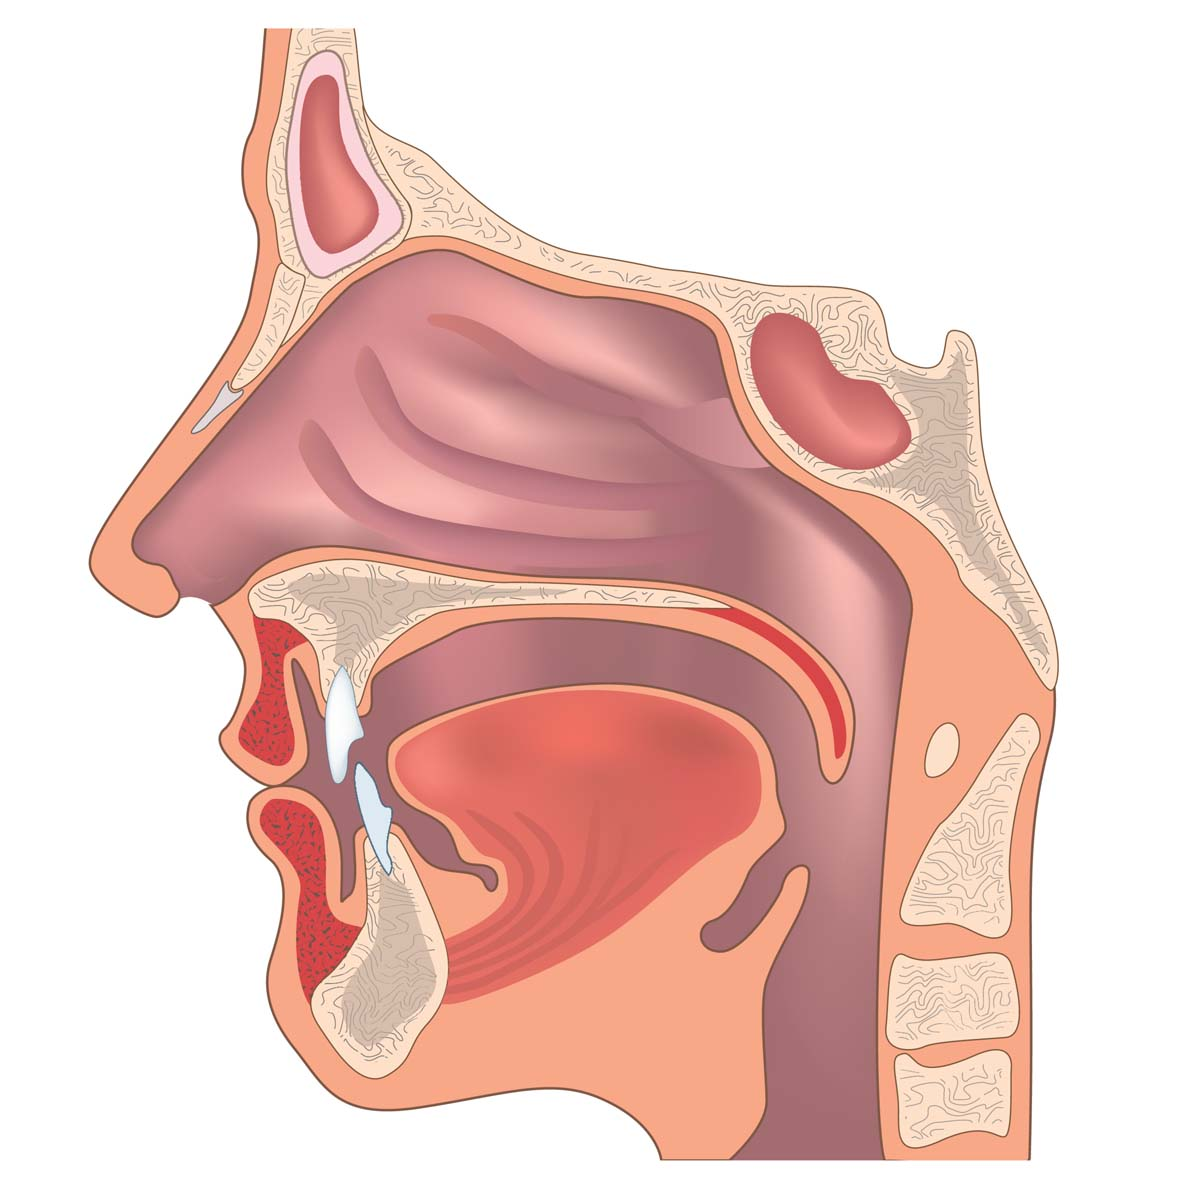 https://ent.uci.edu/learning-center/useful-links/images/Ear_Nose_and_Throat_Doctor_Head_and_Neck_Surgeon_Orange_County_2.jpg